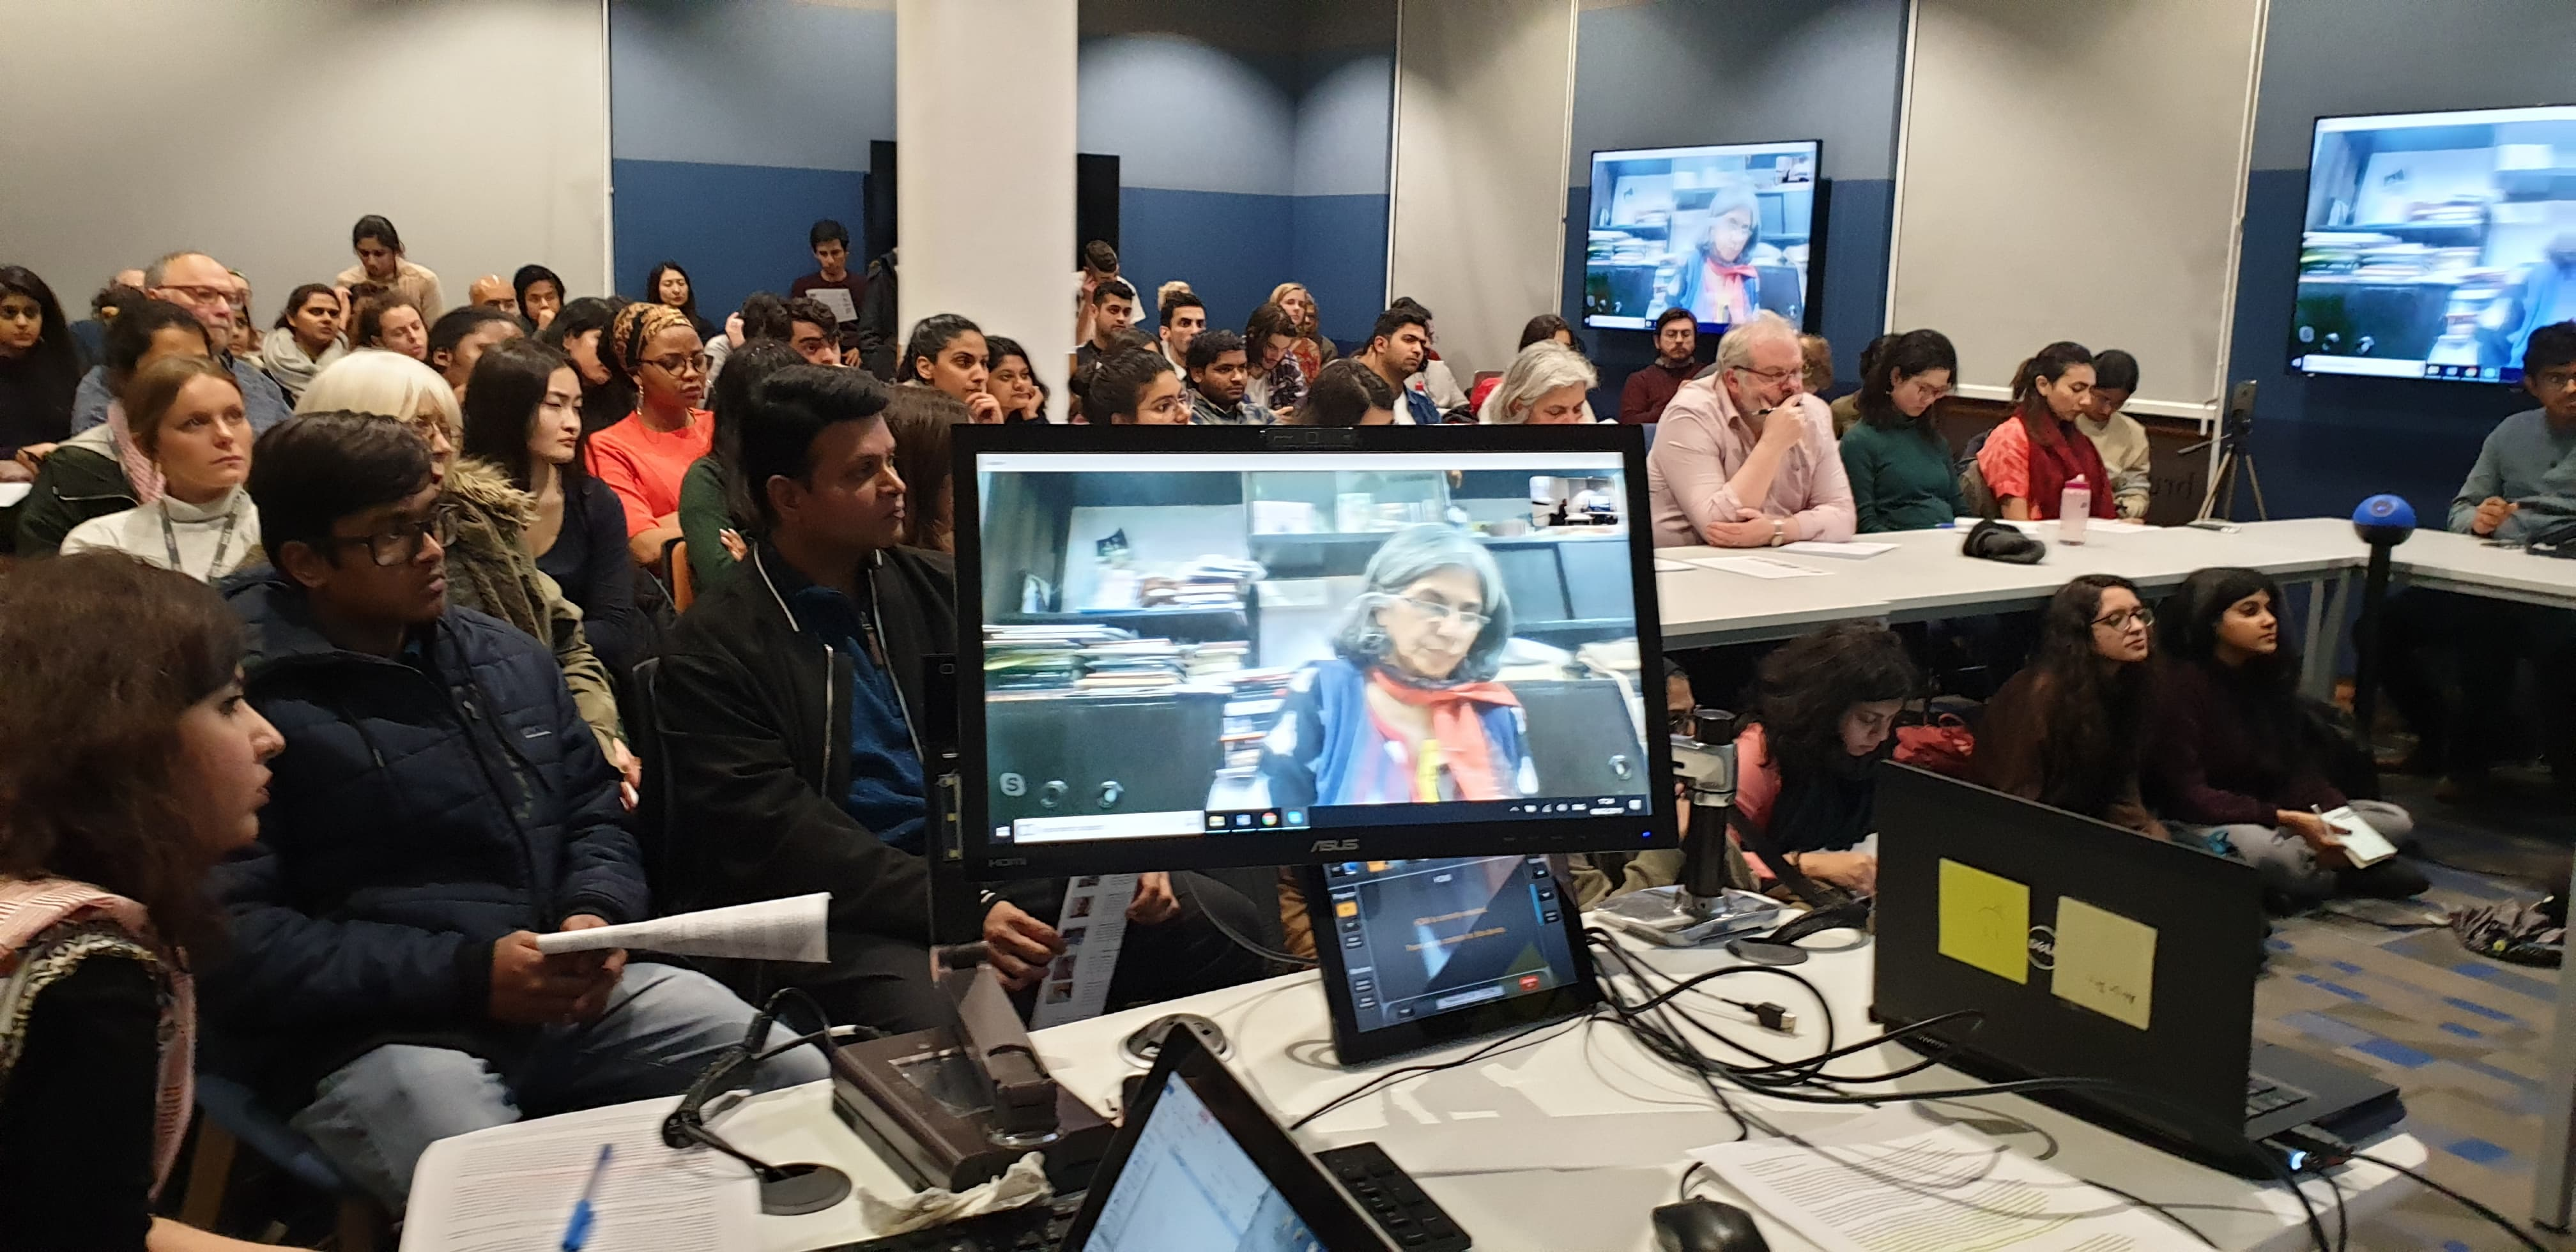 A discussion organised by the SOAS Indian Society, titled 'Violence and Dissent in Modi's India', held in London in February 2019